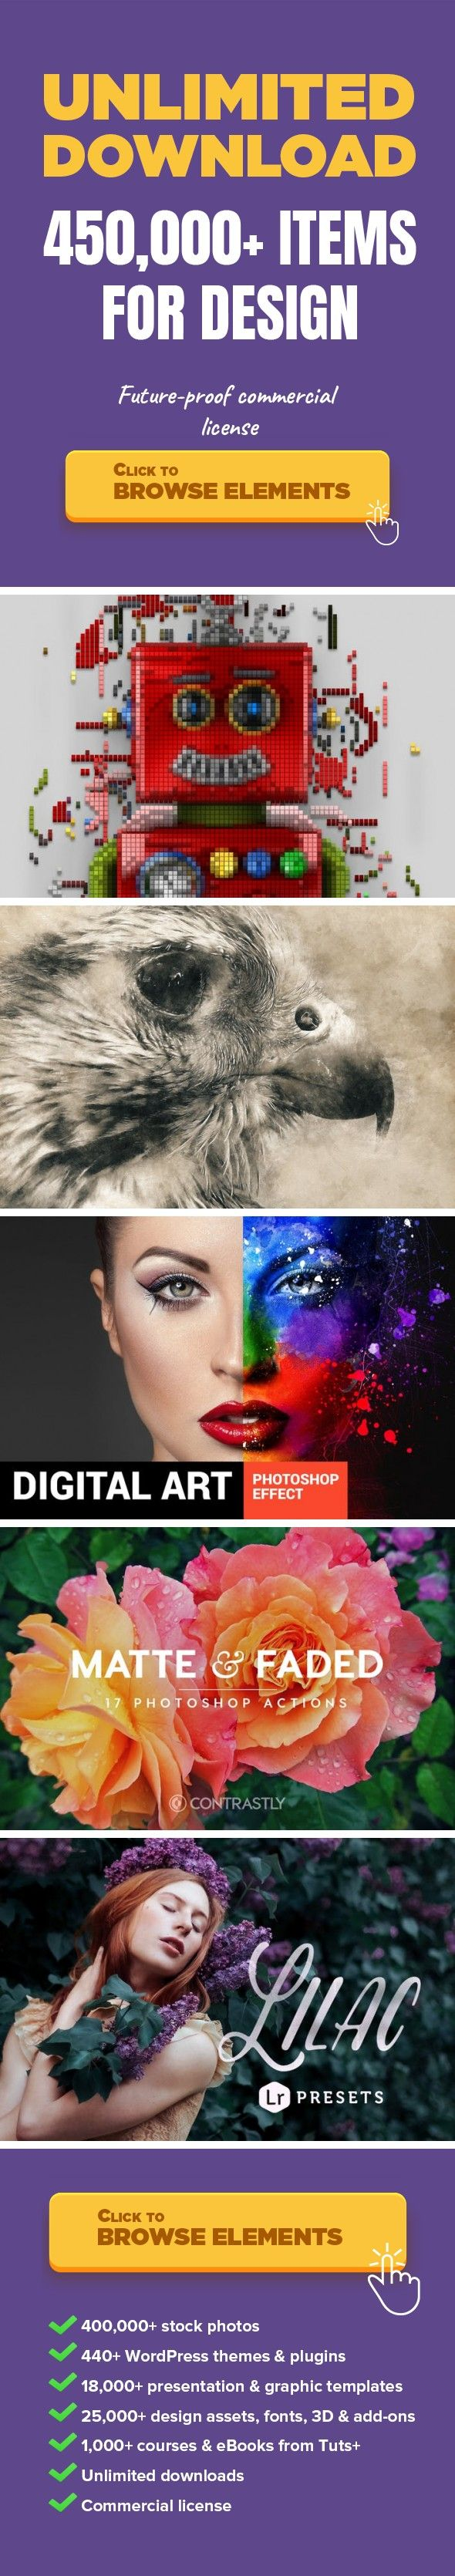 Pixelator Photoshop Action Add-ons, Actions and Presets